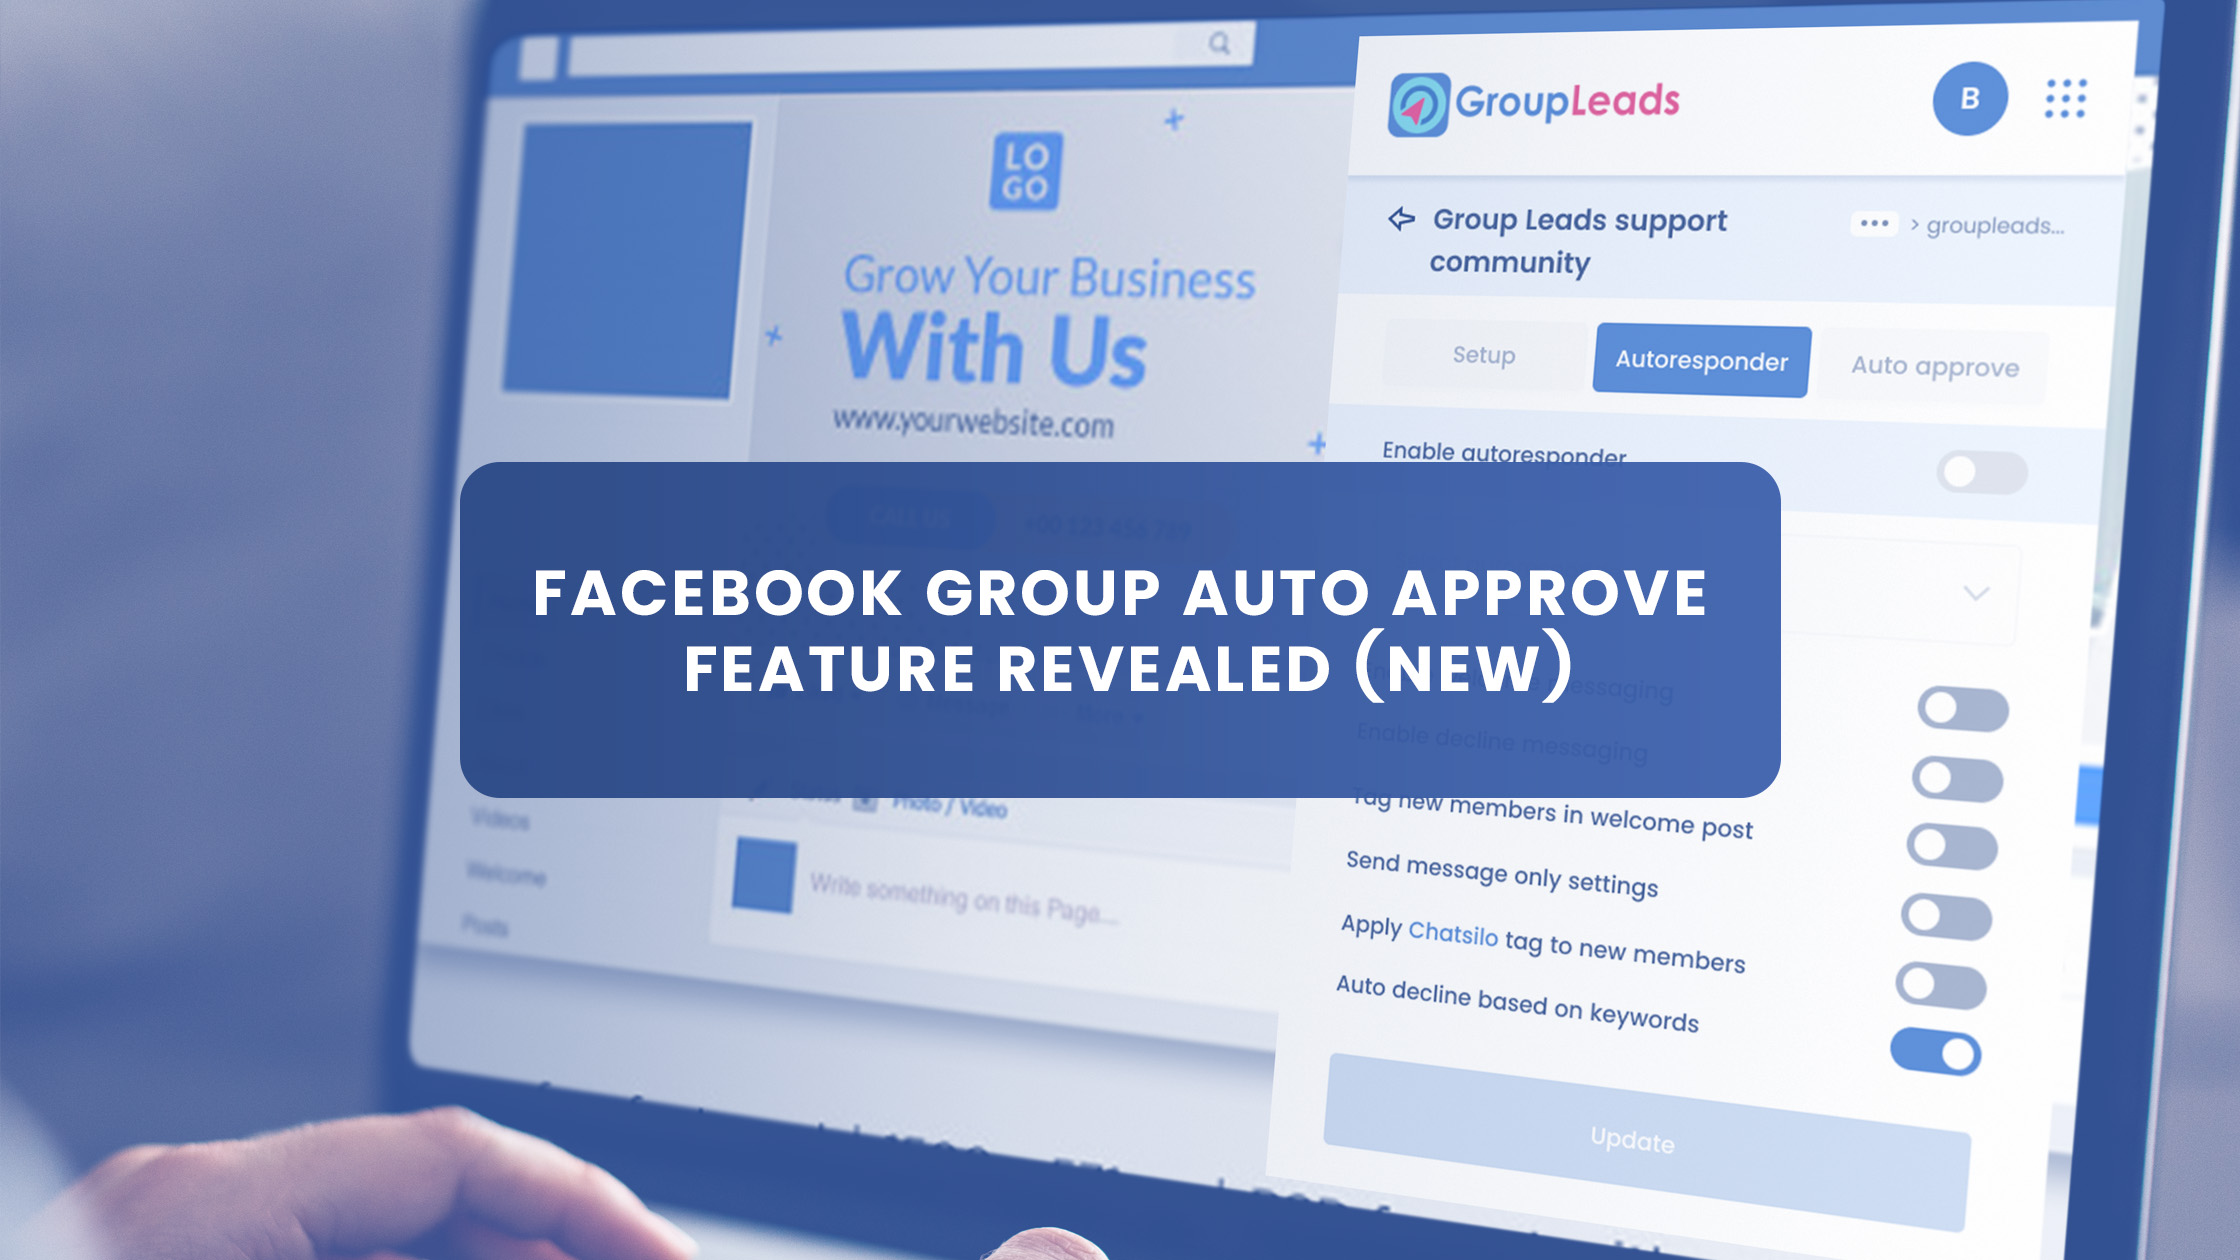 Facebook Group Auto Approve Feature Revealed (NEW)